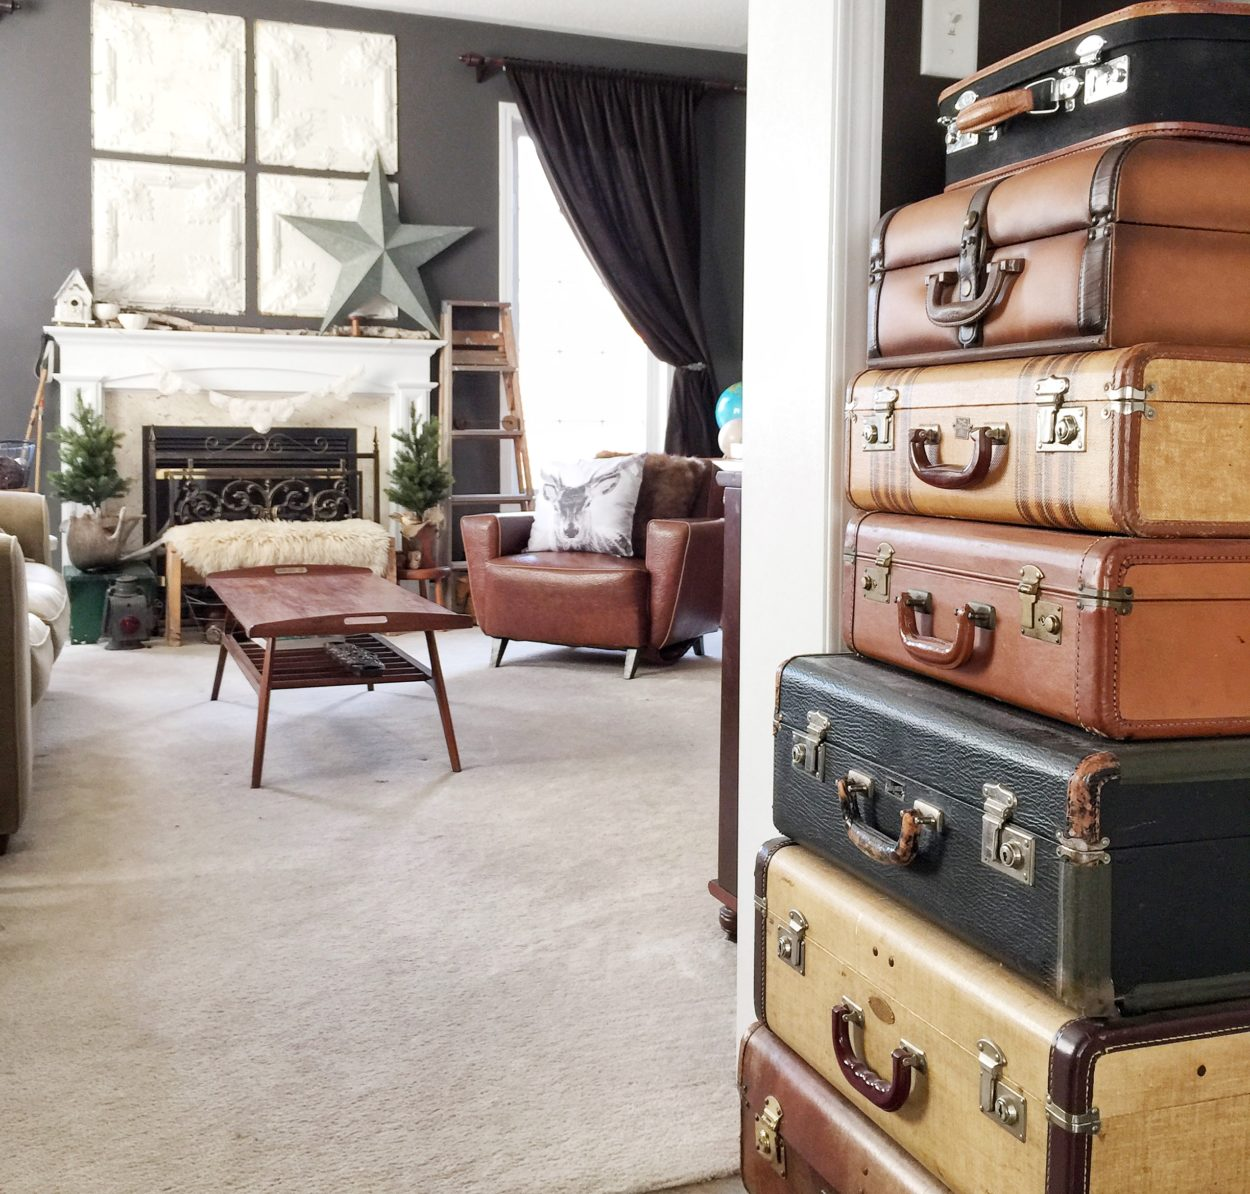 Decorating With Vintage Items Home Tour Salvage Sister